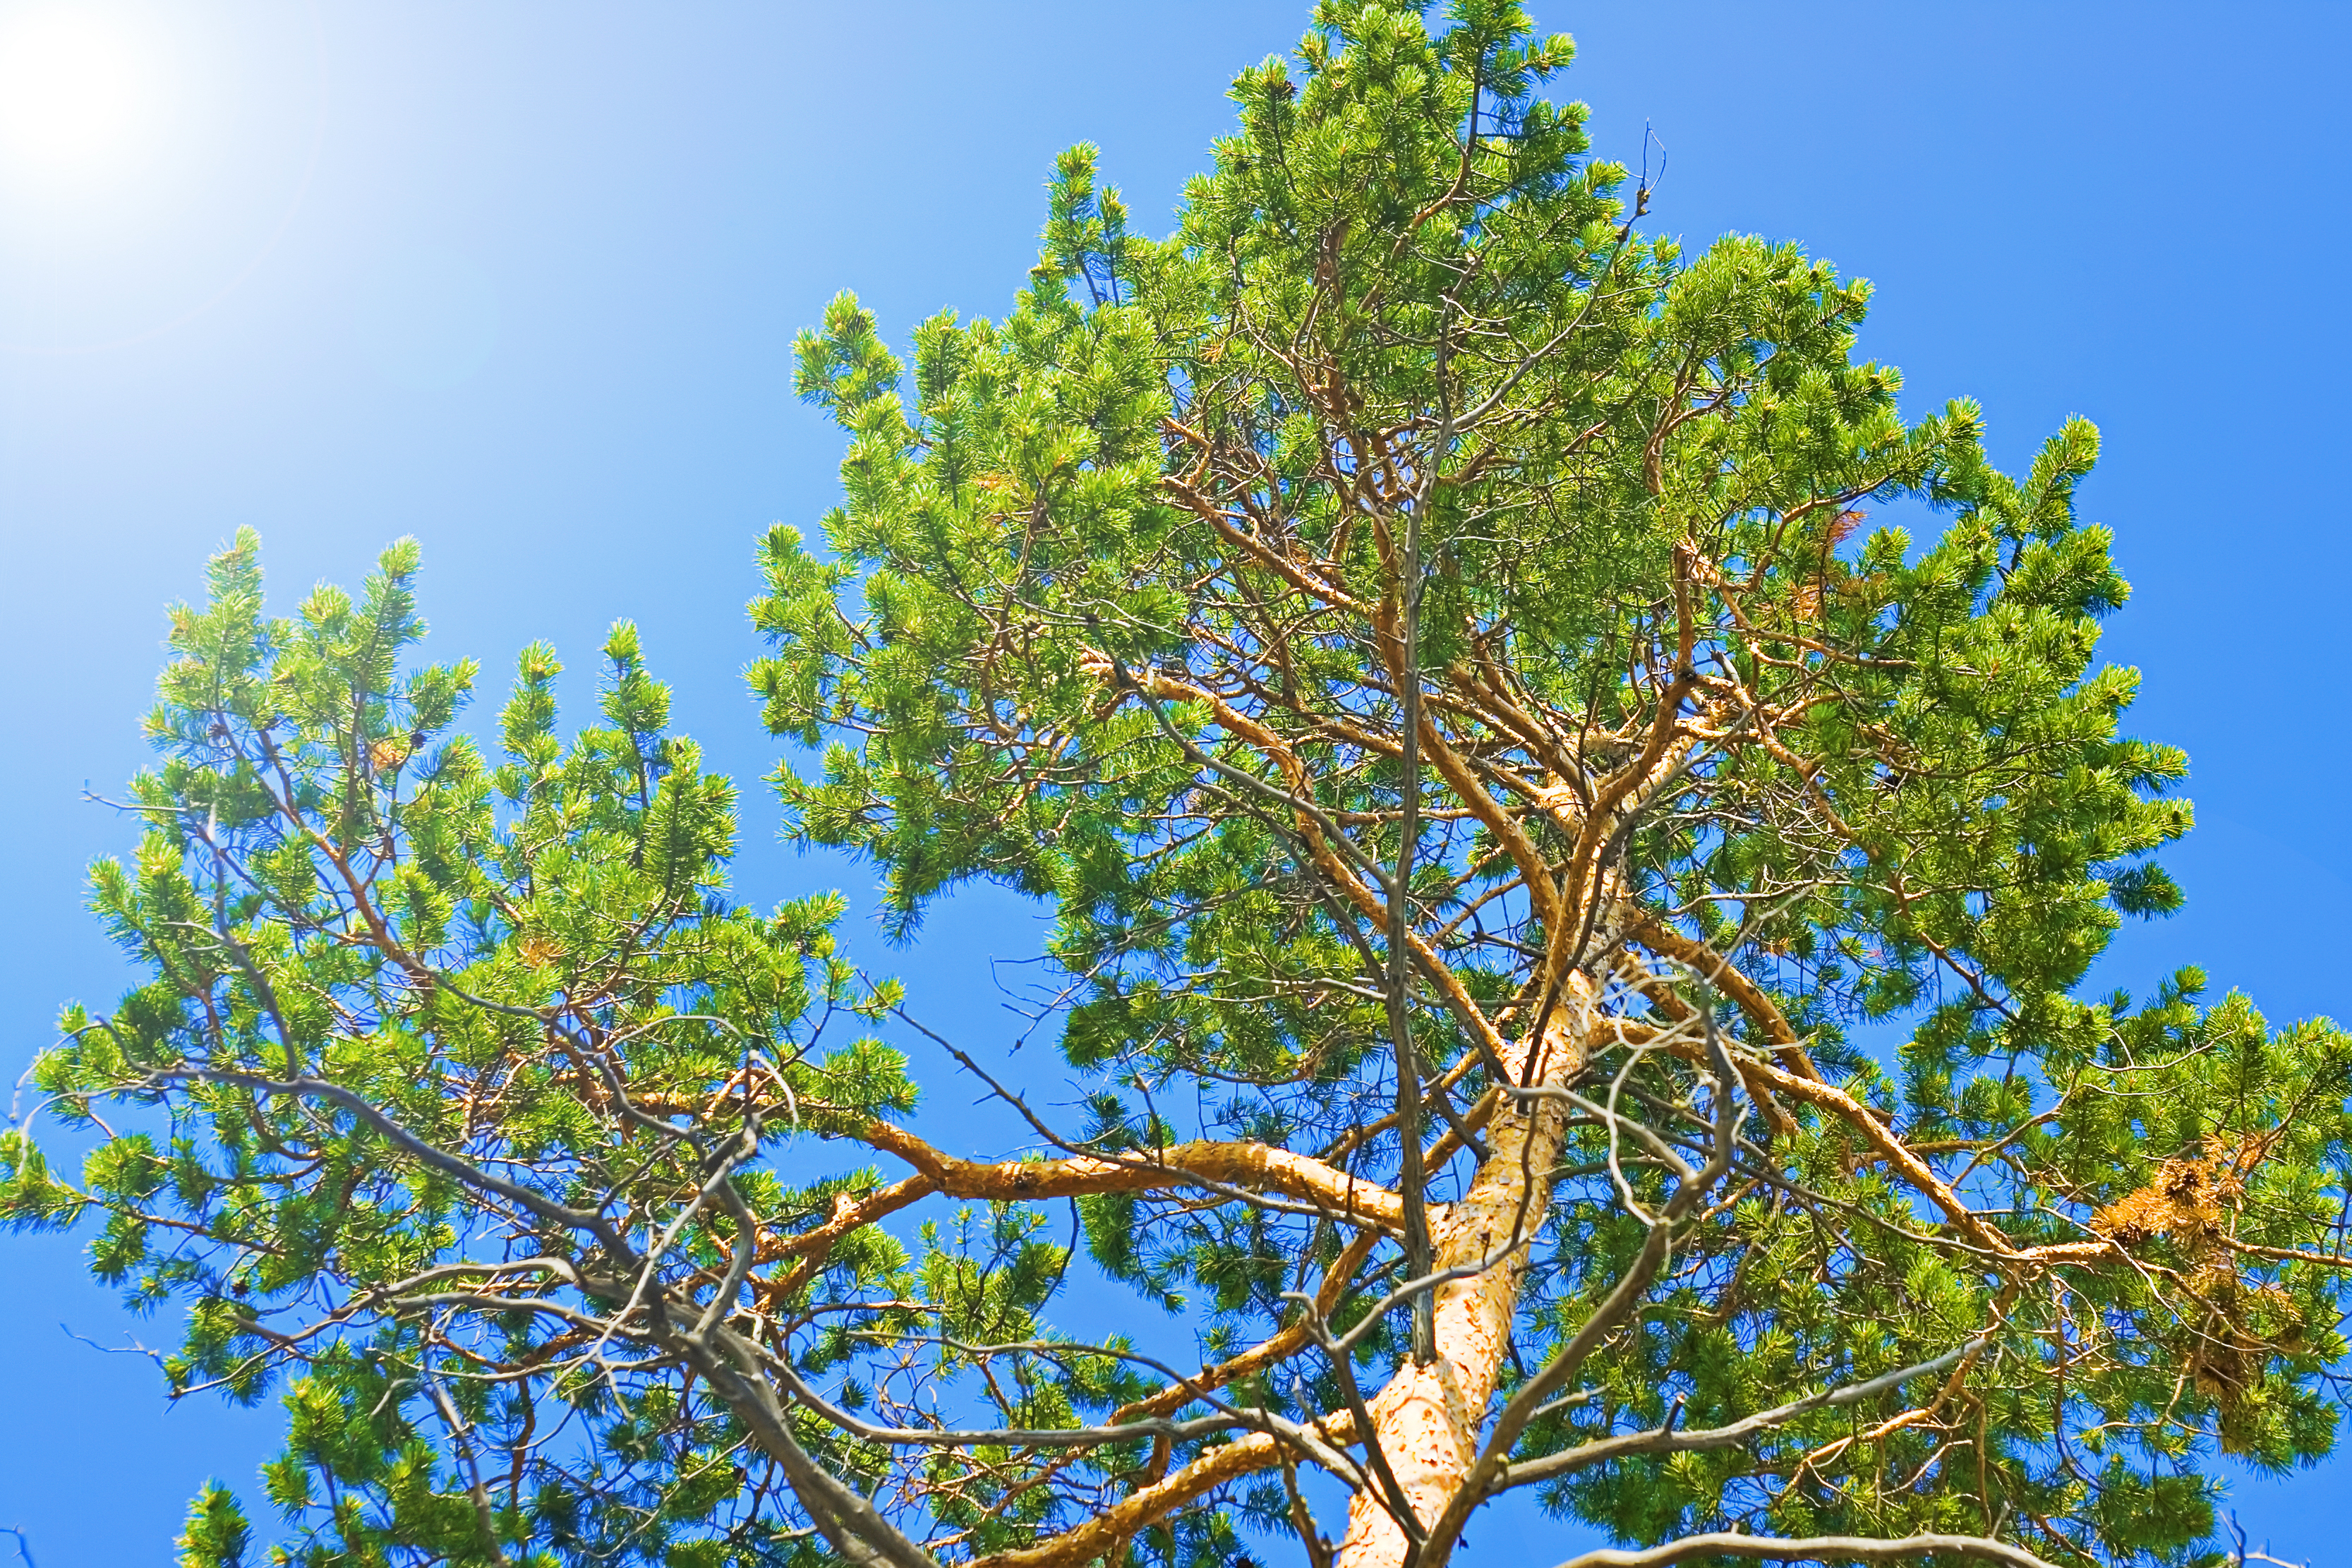 tree, Purity, Tranquil, Sunlight, Summer, HQ Photo